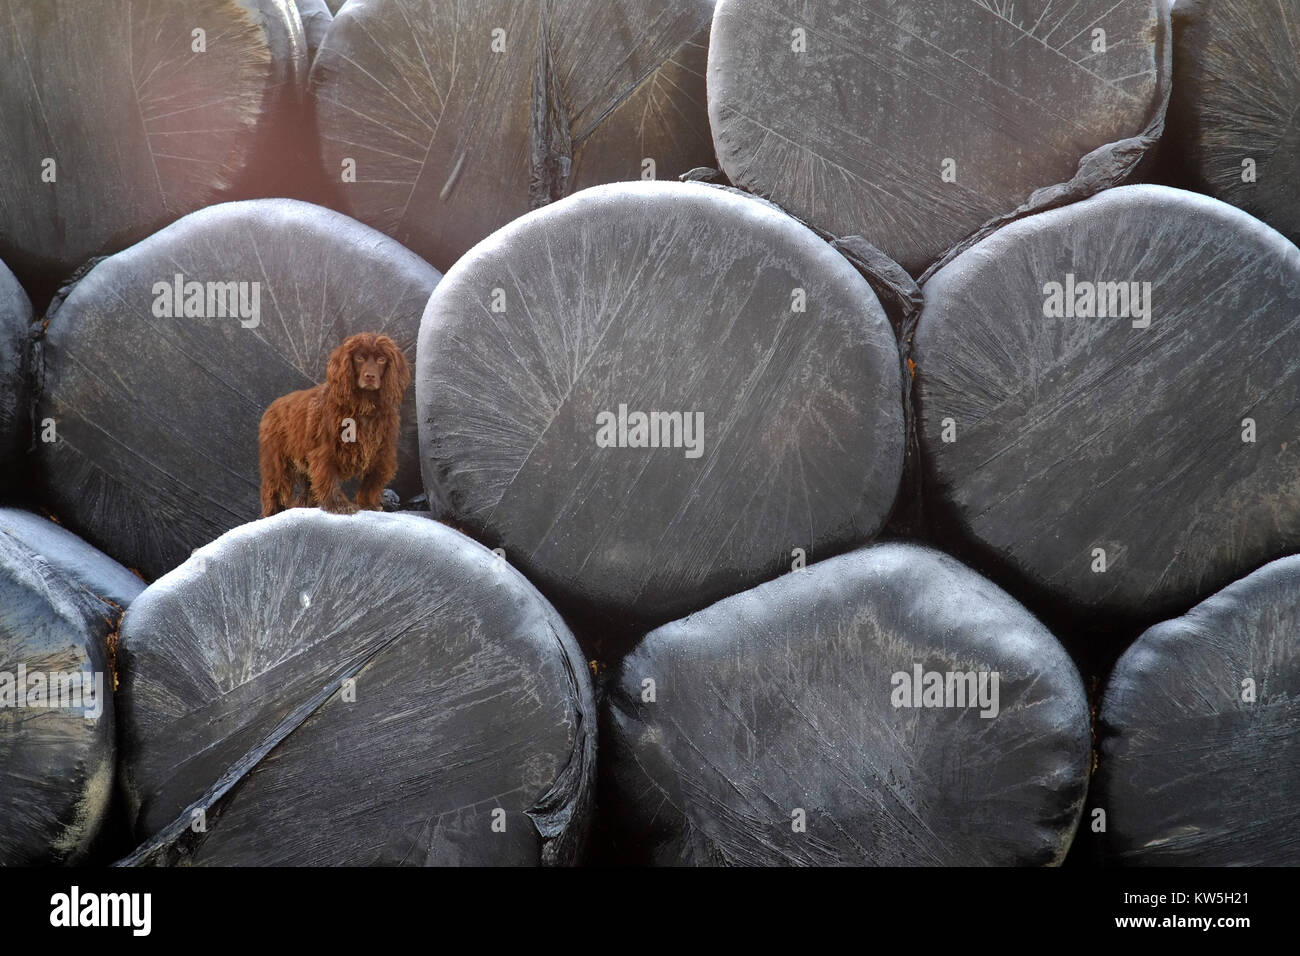 Working cocker spaniel standing on wrapped bails of hay in mid winter - Stock Image